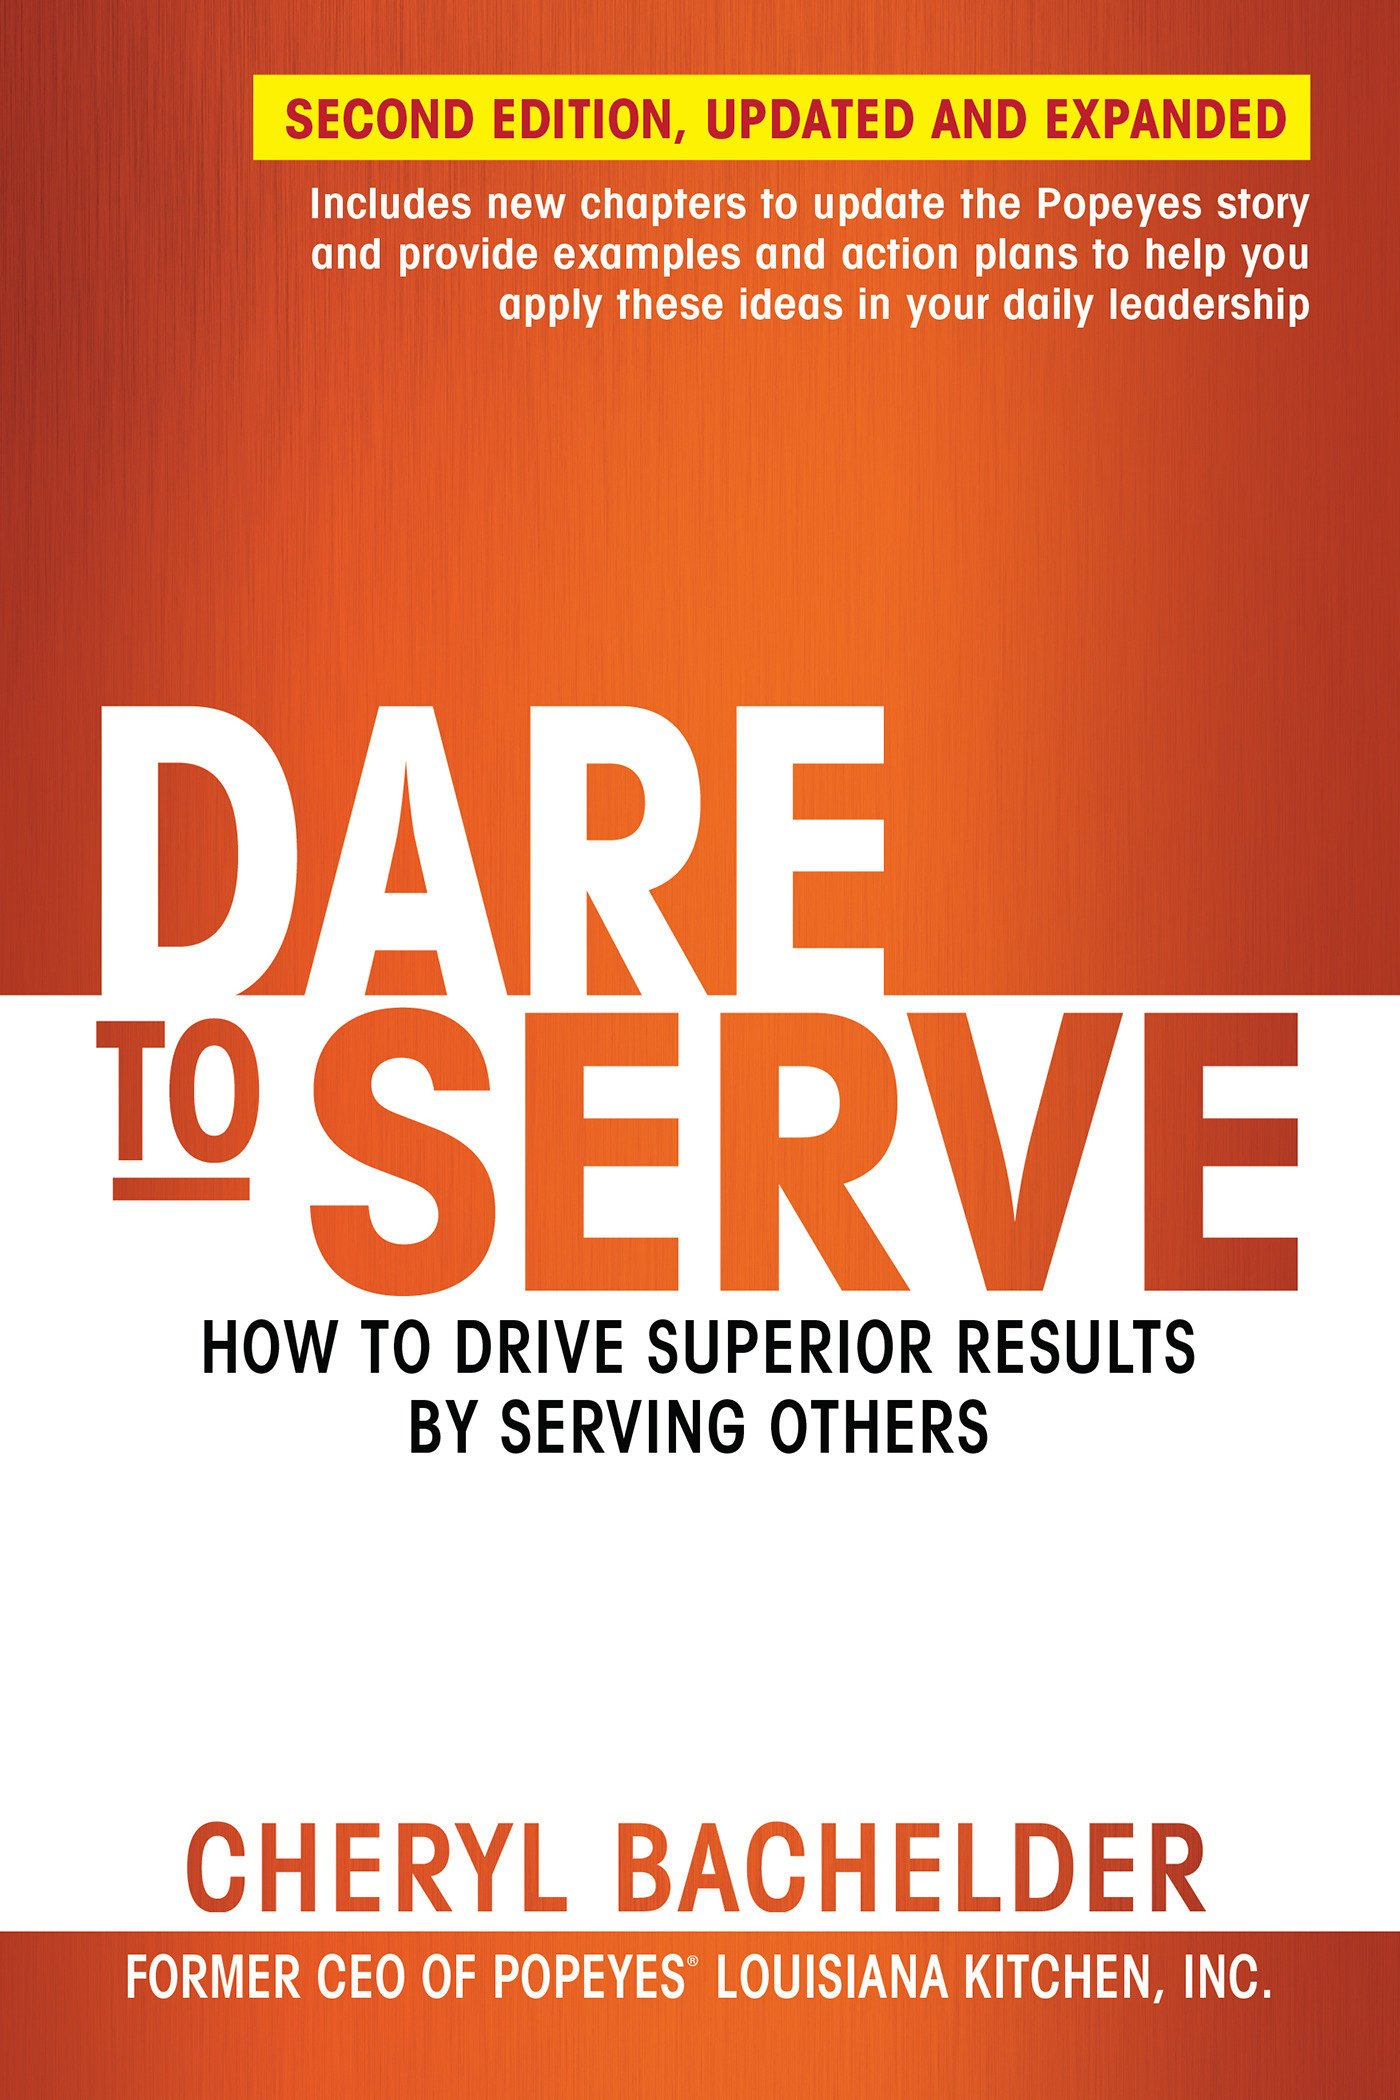 Dare to Serve: How to Drive Superior Results by Serving